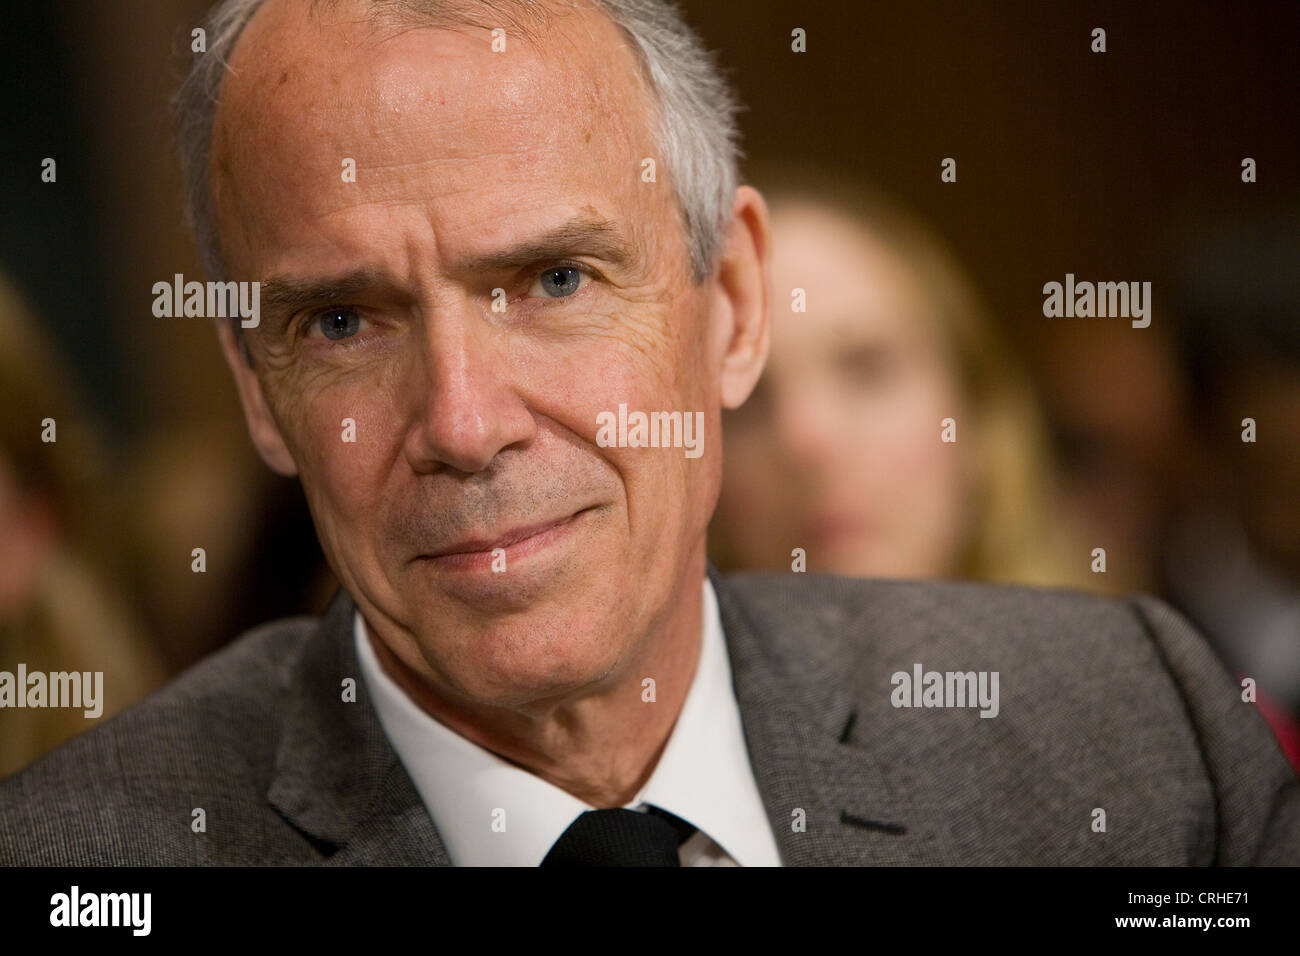 Roger Faxon, CEO of the record label EMI Group.  - Stock Image